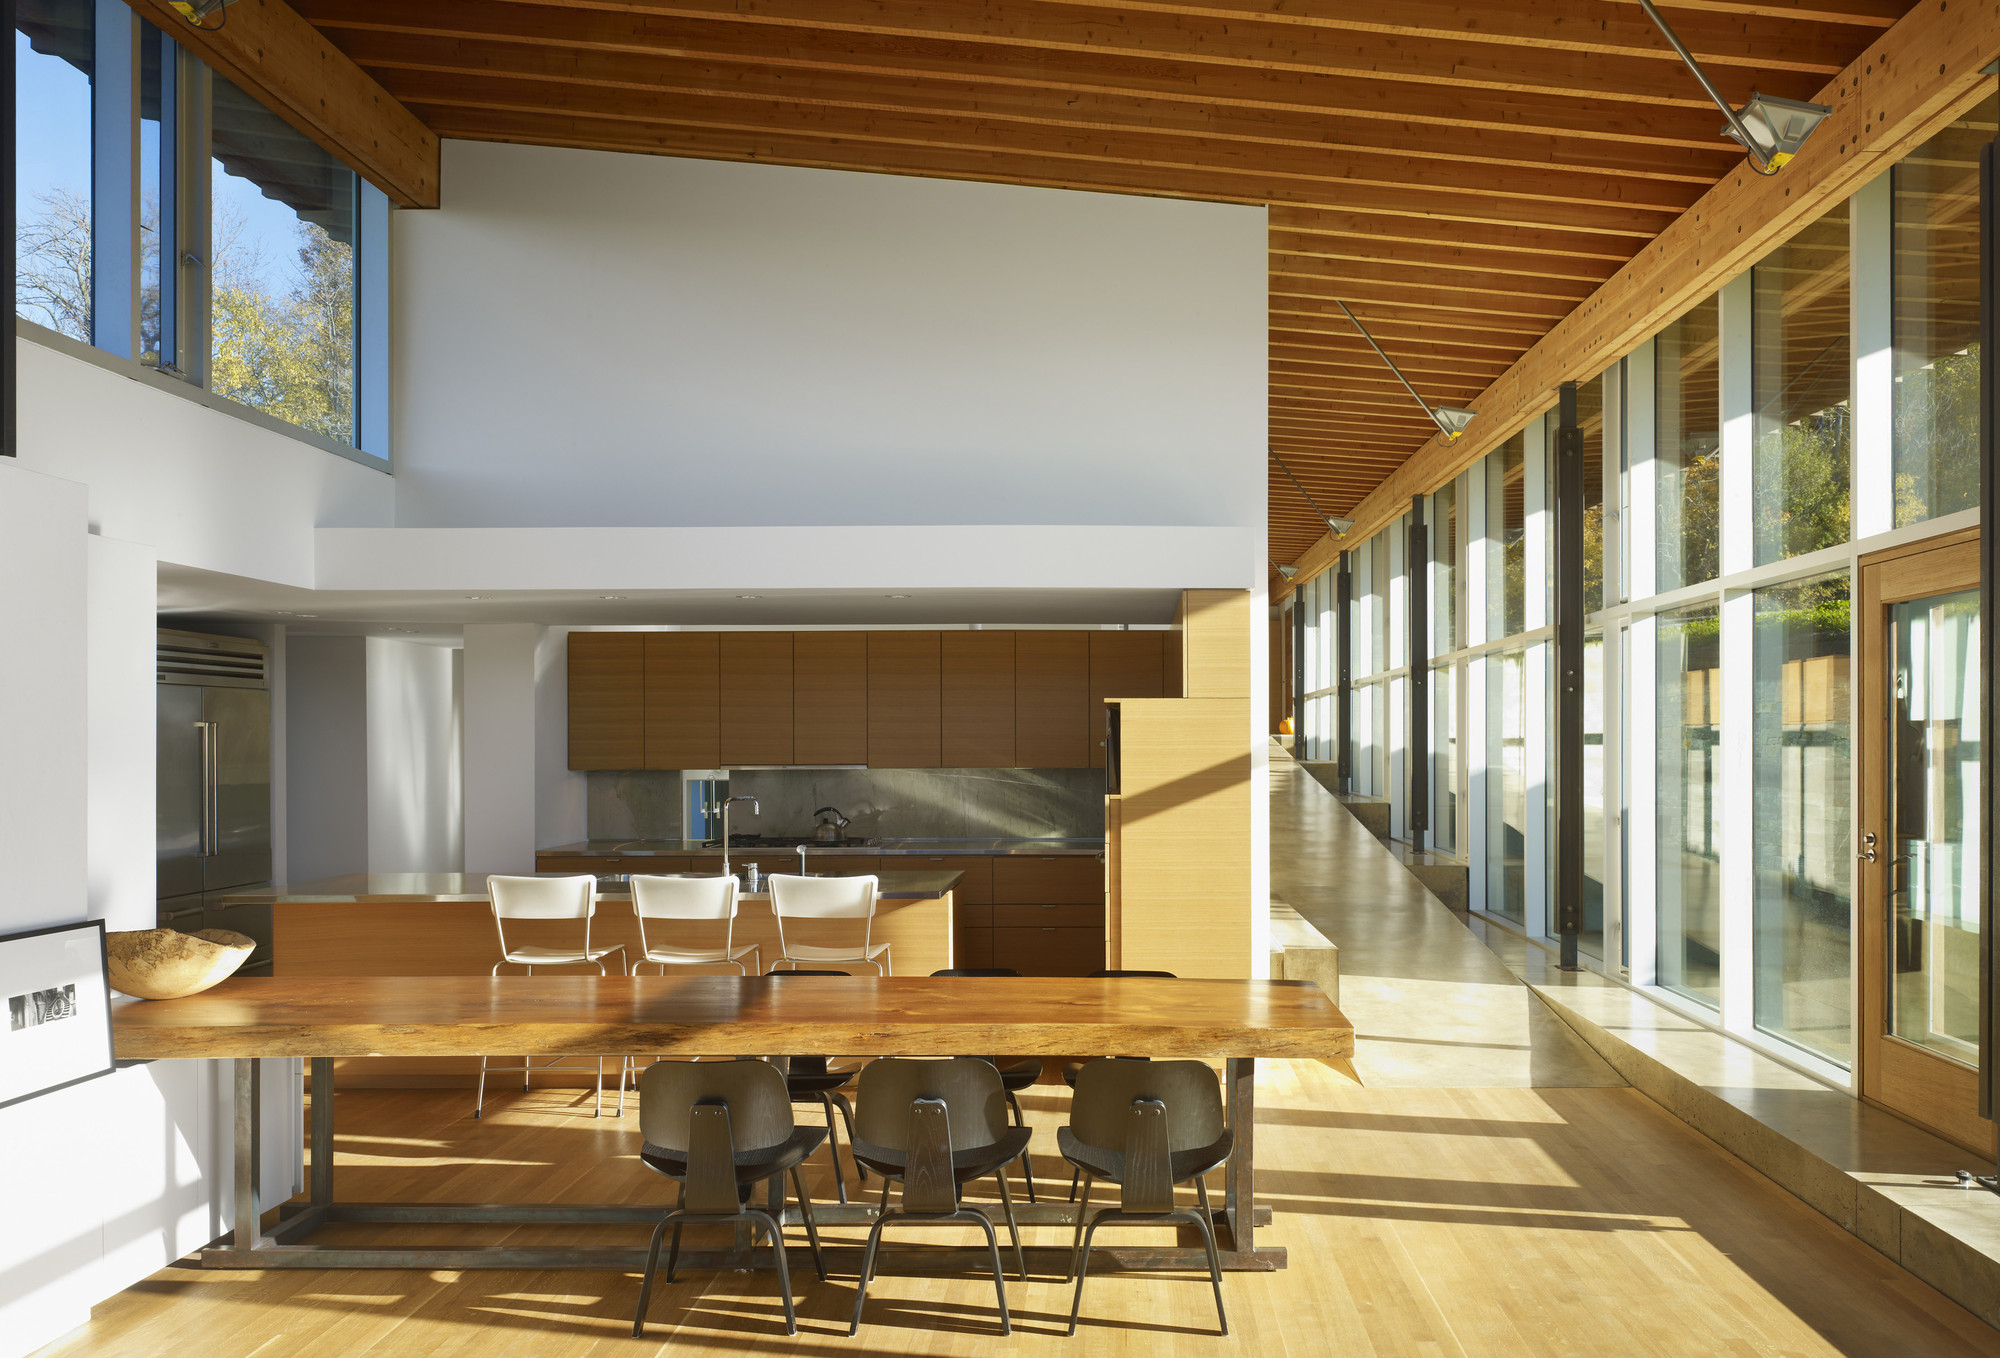 Gallery of meadow house ian macdonald architect 5 for Meadow house